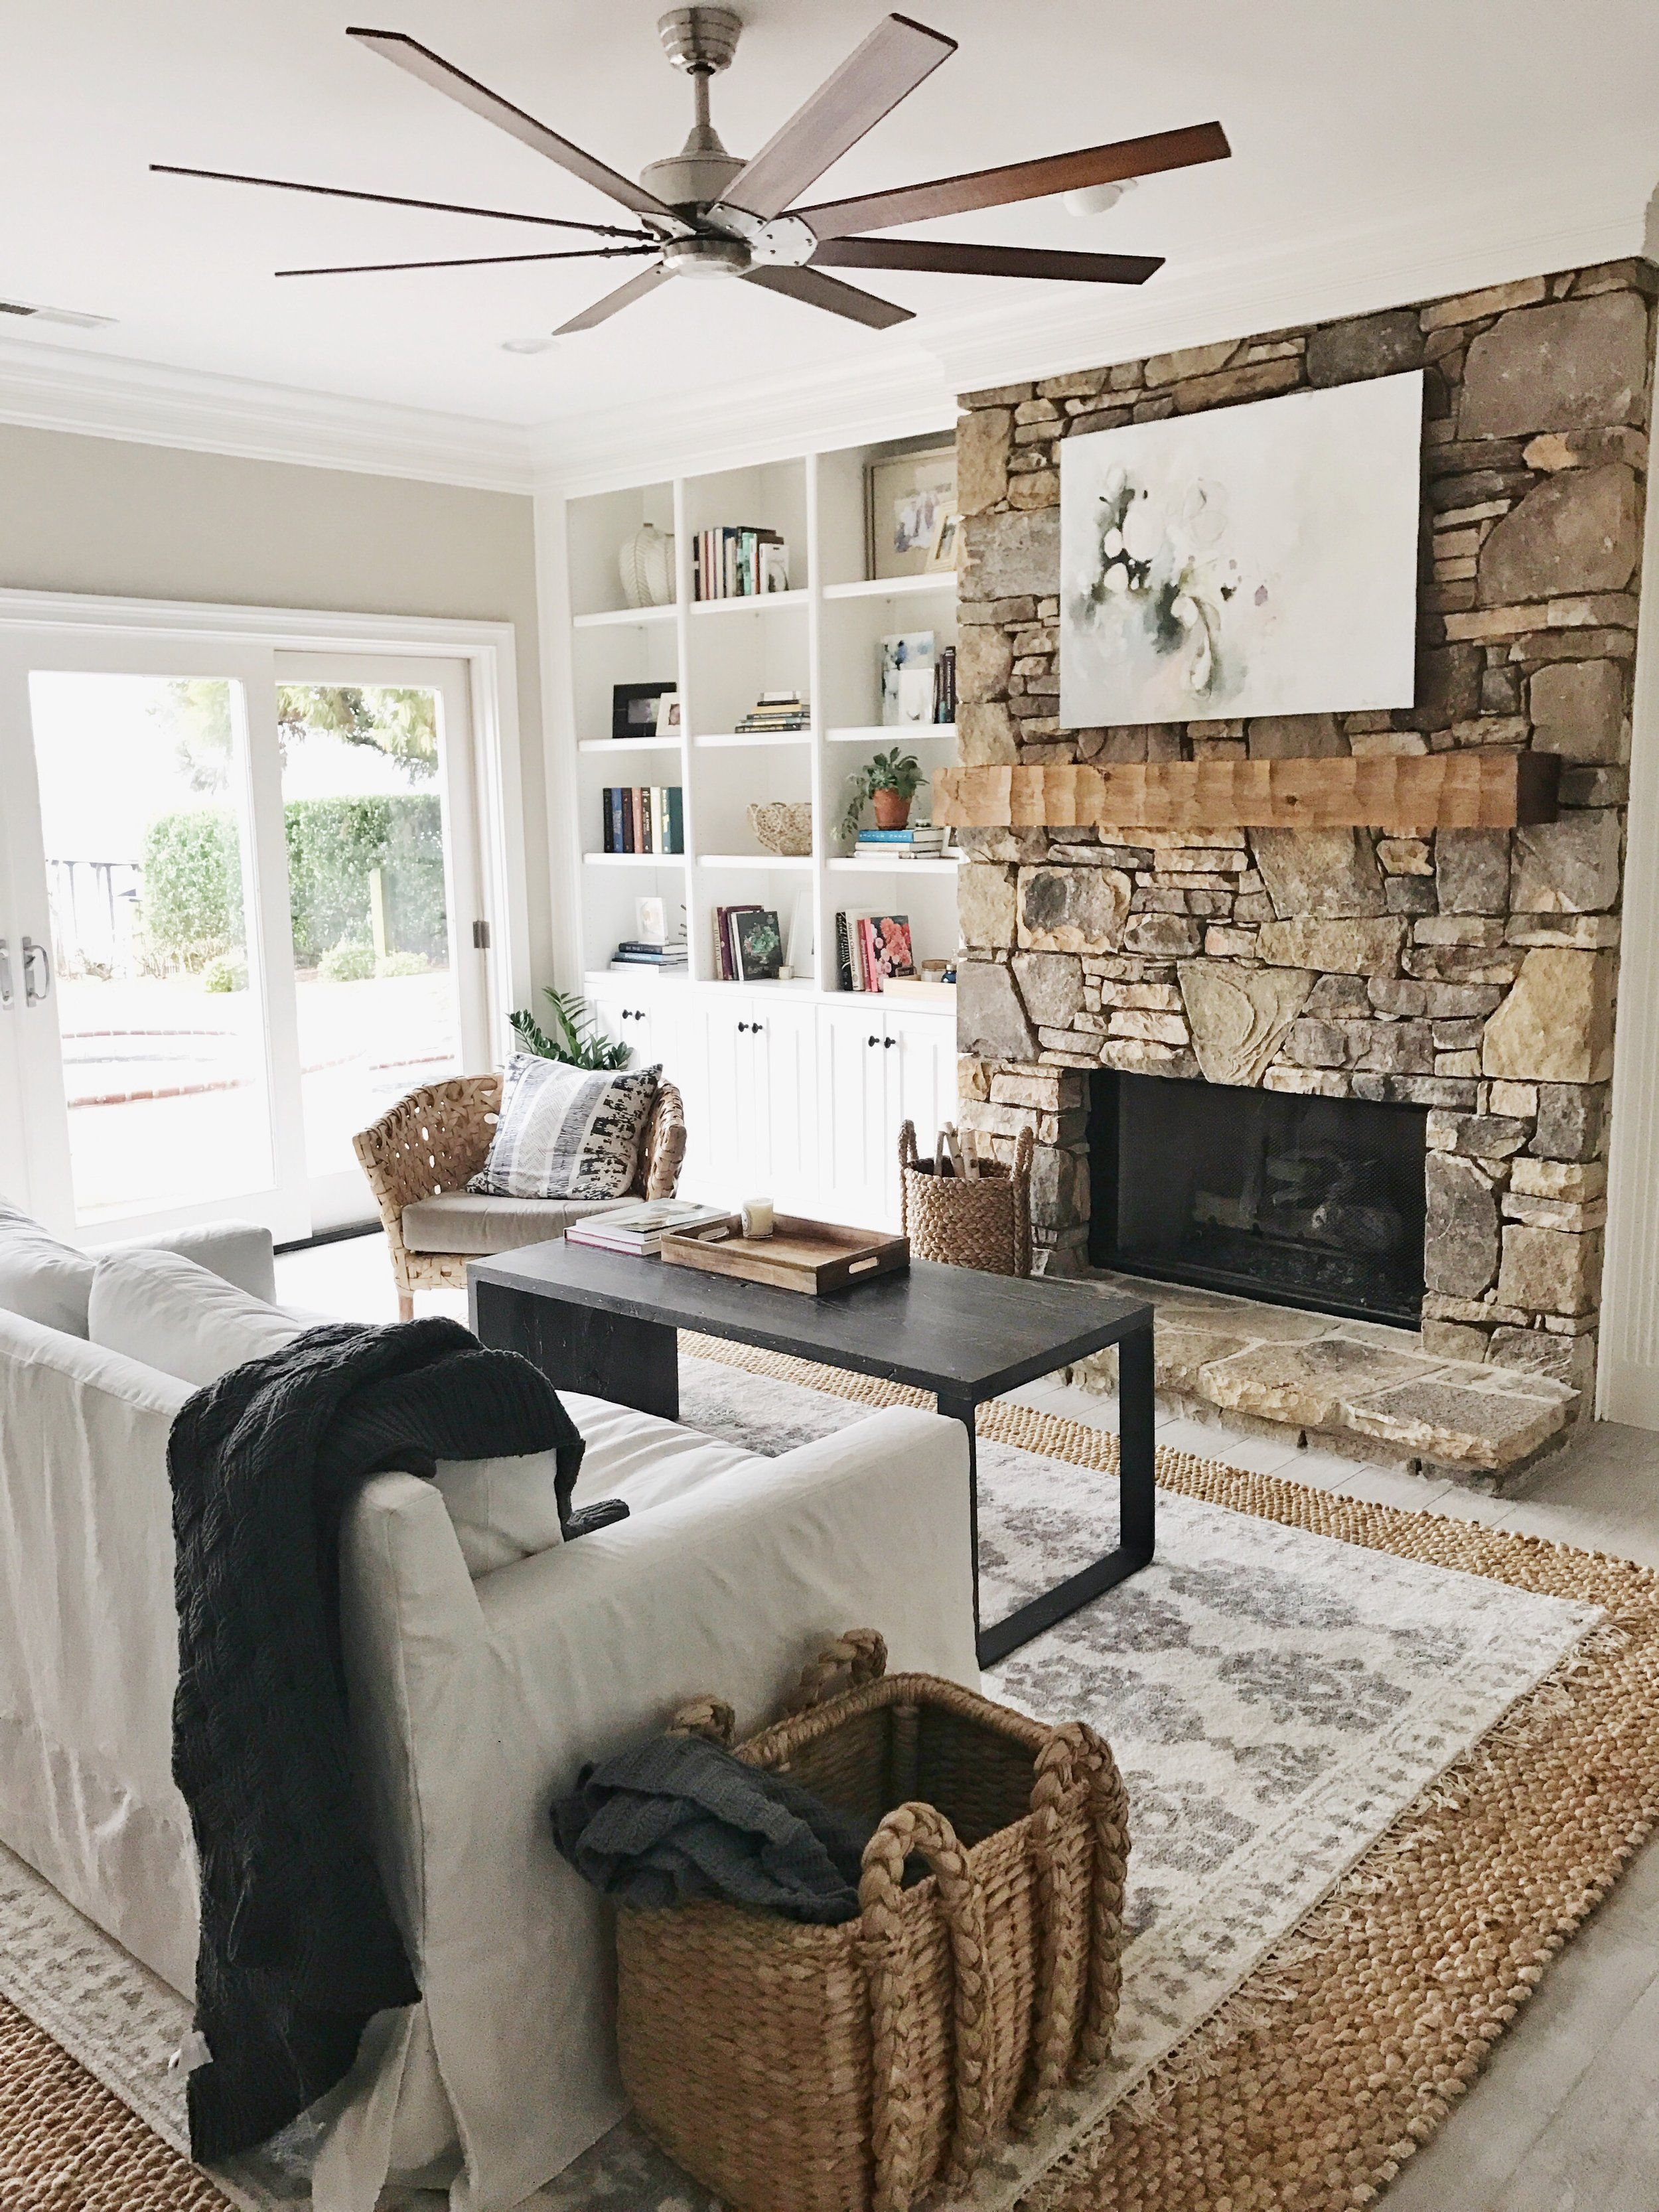 Layering Rugs | Rugs in living room, Home decor, Home